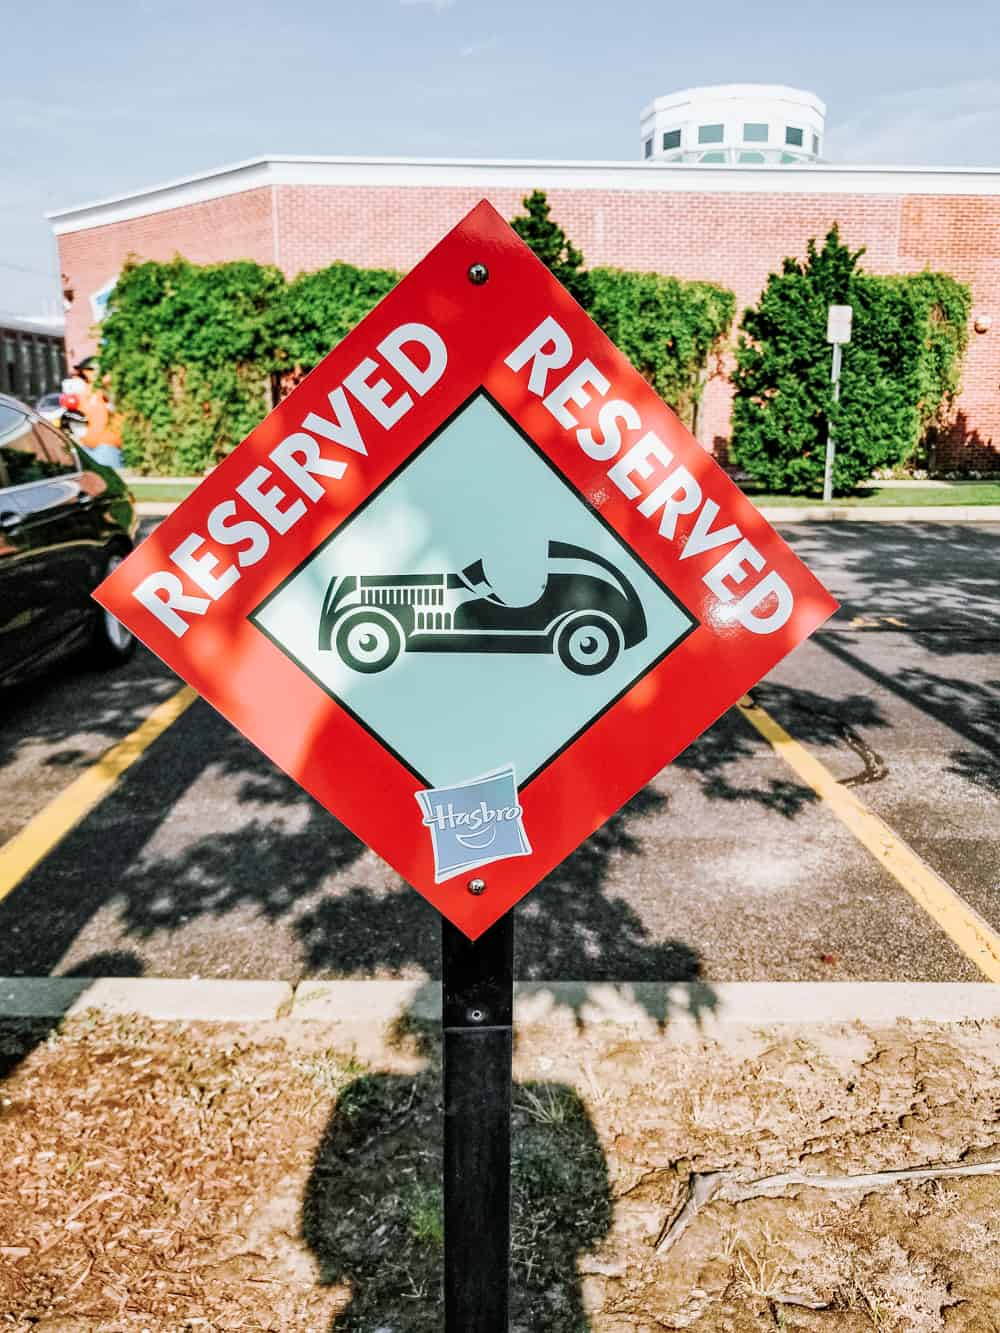 reserved parking sign at Hasbro office in Rhode Island